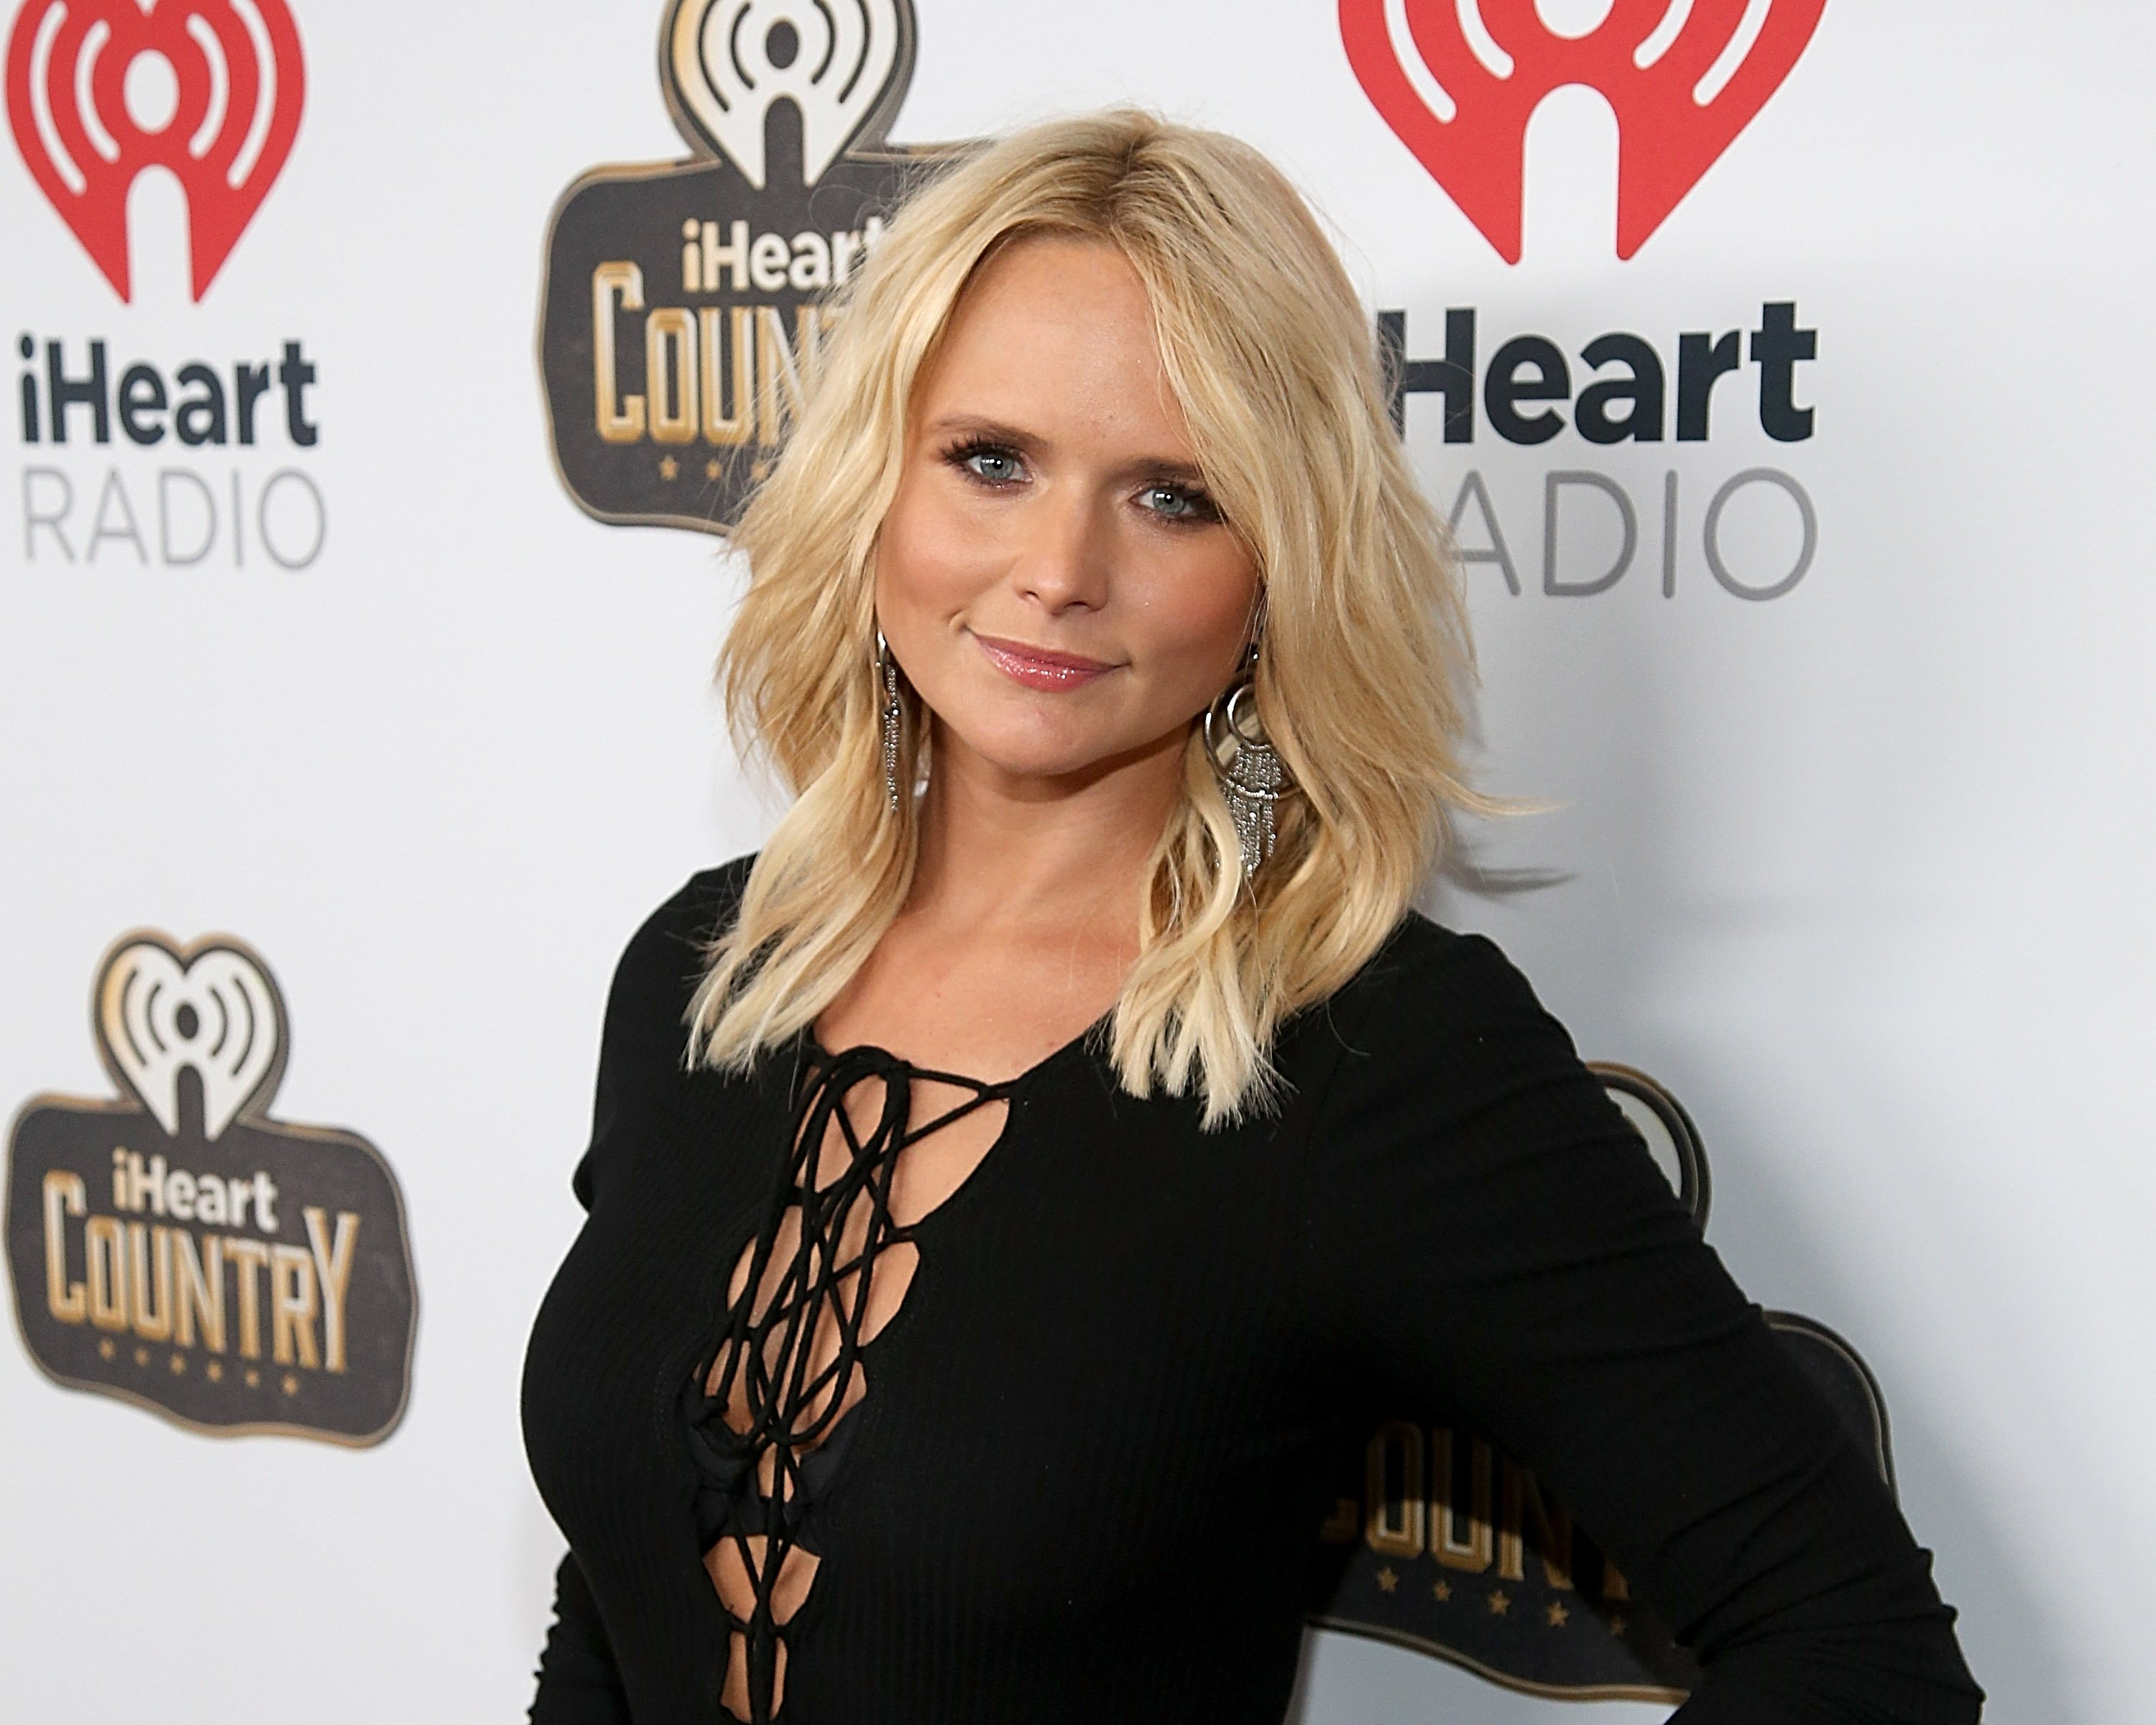 Miranda Lambert pictured at the iHeartCountry Festival at The Frank Erwin Center, 2016, Austin, Texas. | Photo: Getty Images